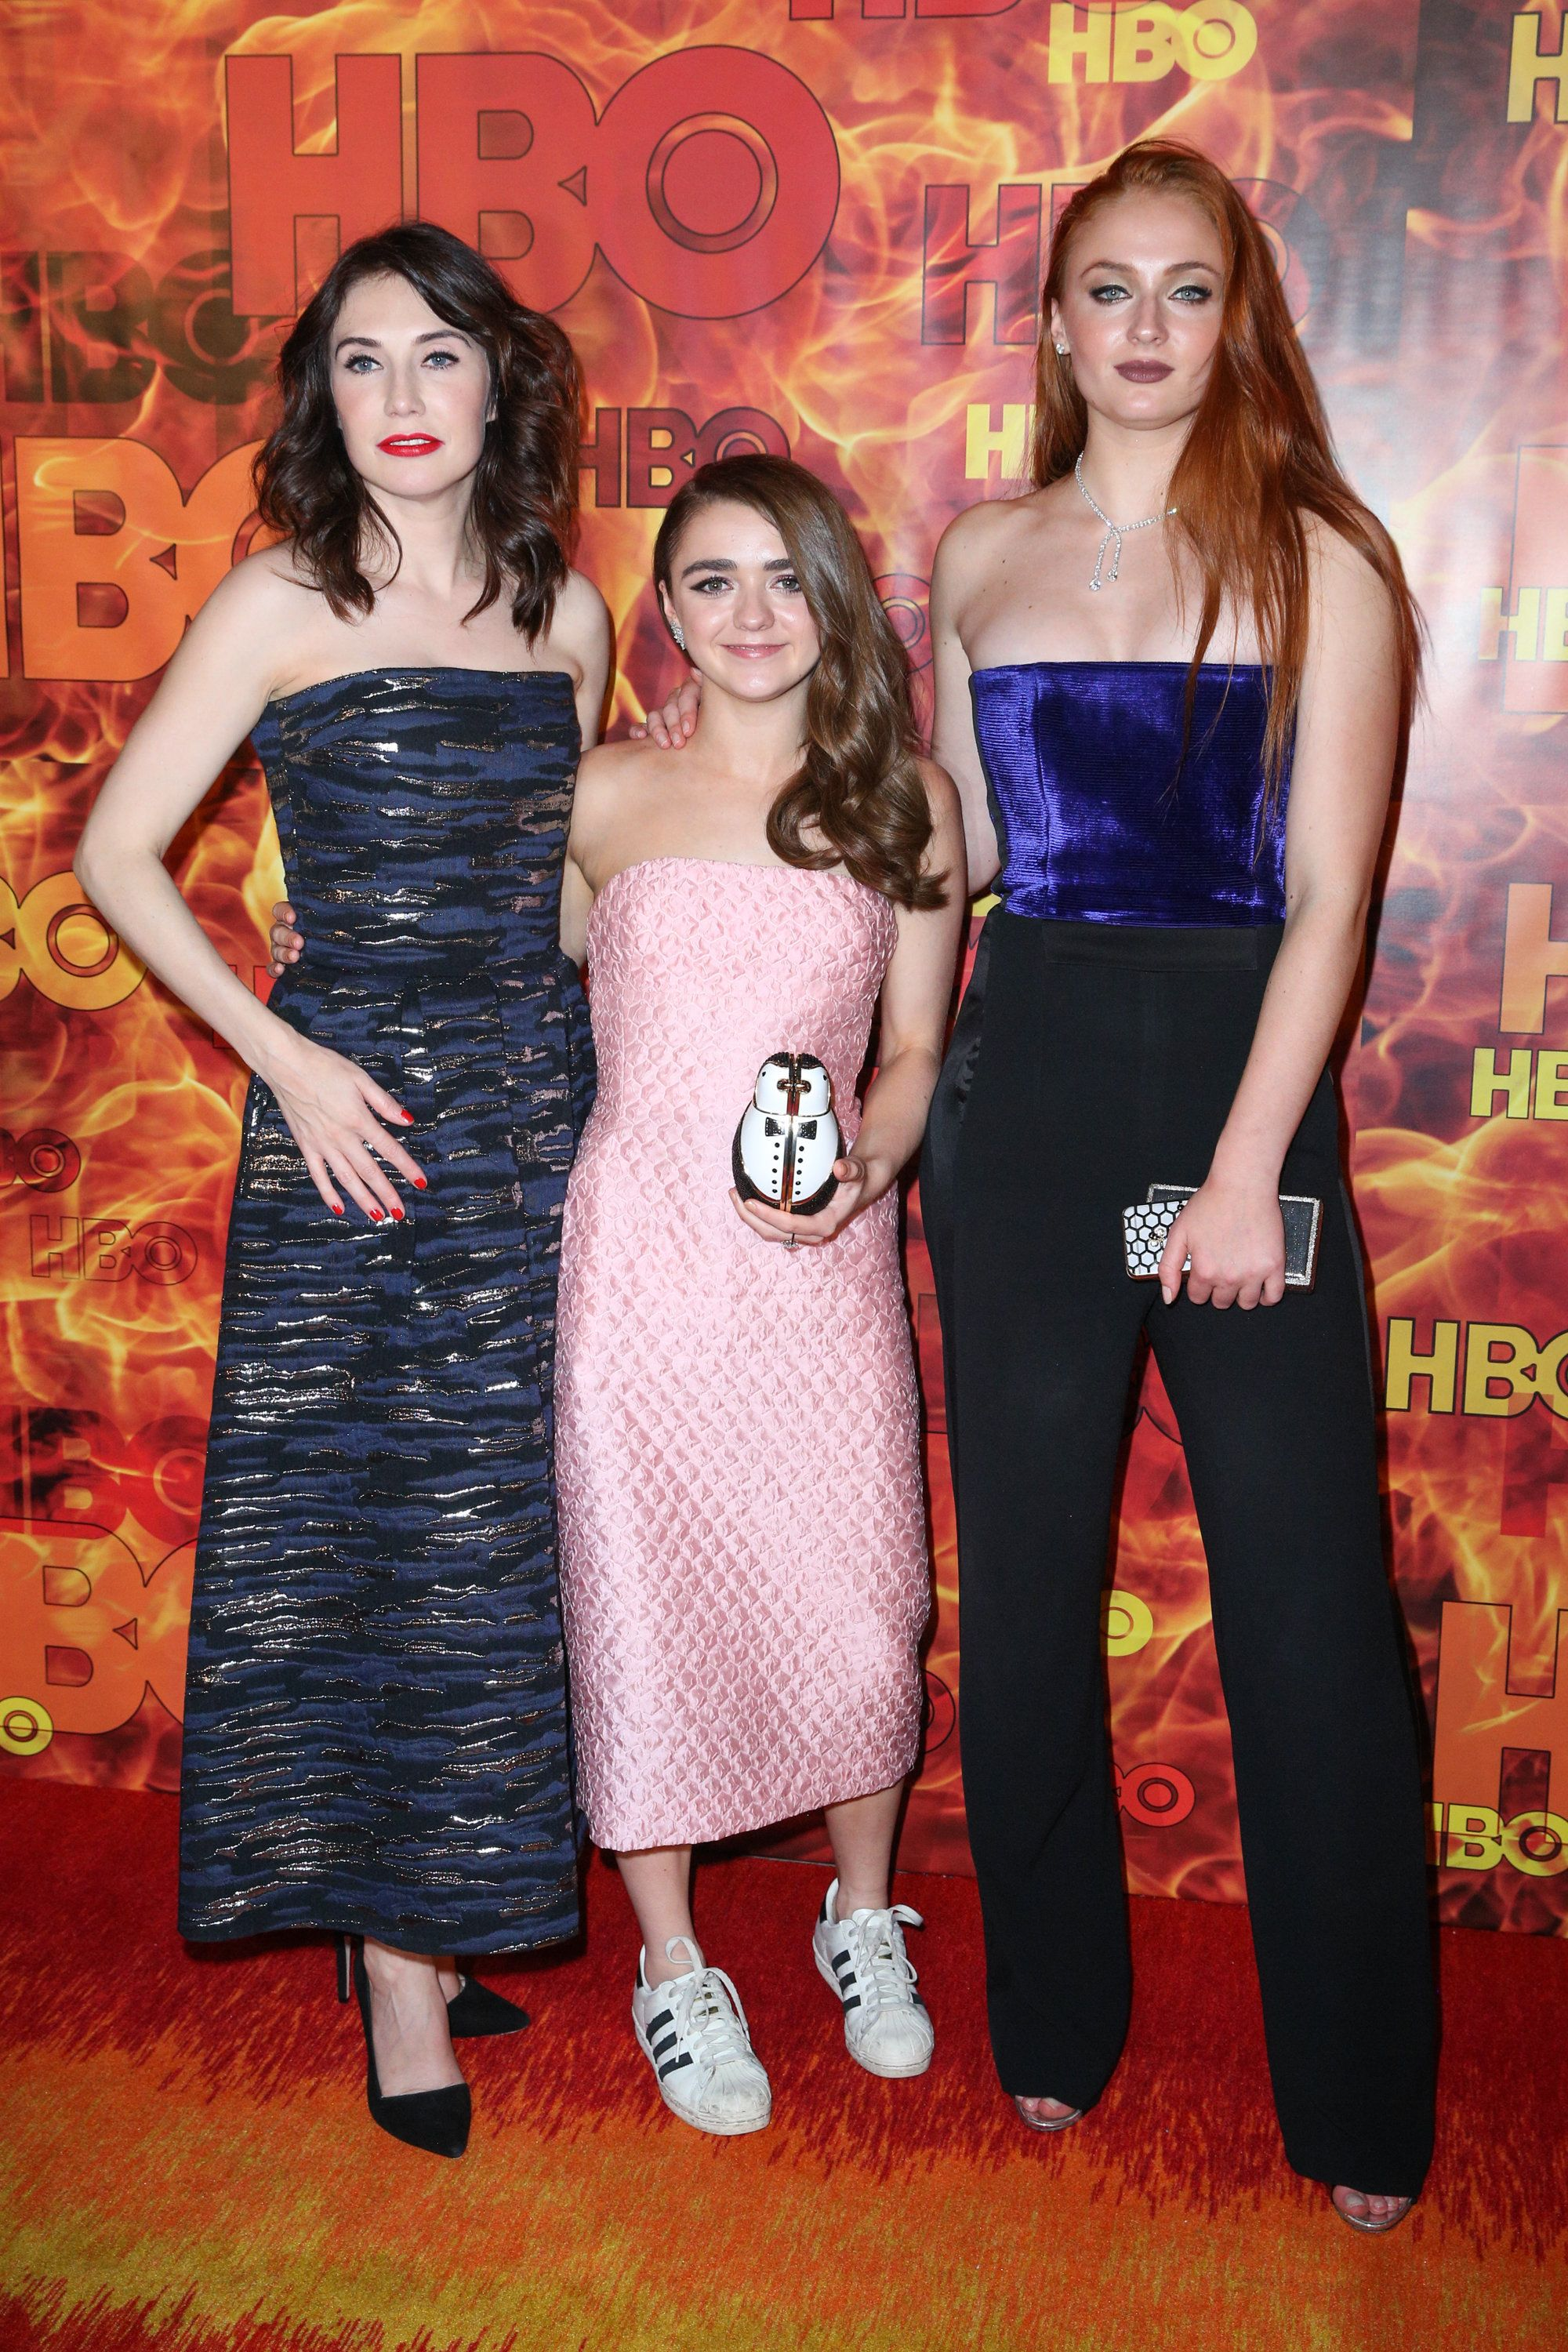 Carice van Houten, from left, Maisie Williams and Sophie Turner arrive at the 2015 HBO Primetime Emmy Awards After Party at Pacific Design Center on Sunday, Sept. 20, 2015, in West Hollywood, Calif. (Photo by Rich Fury/Invision/AP)